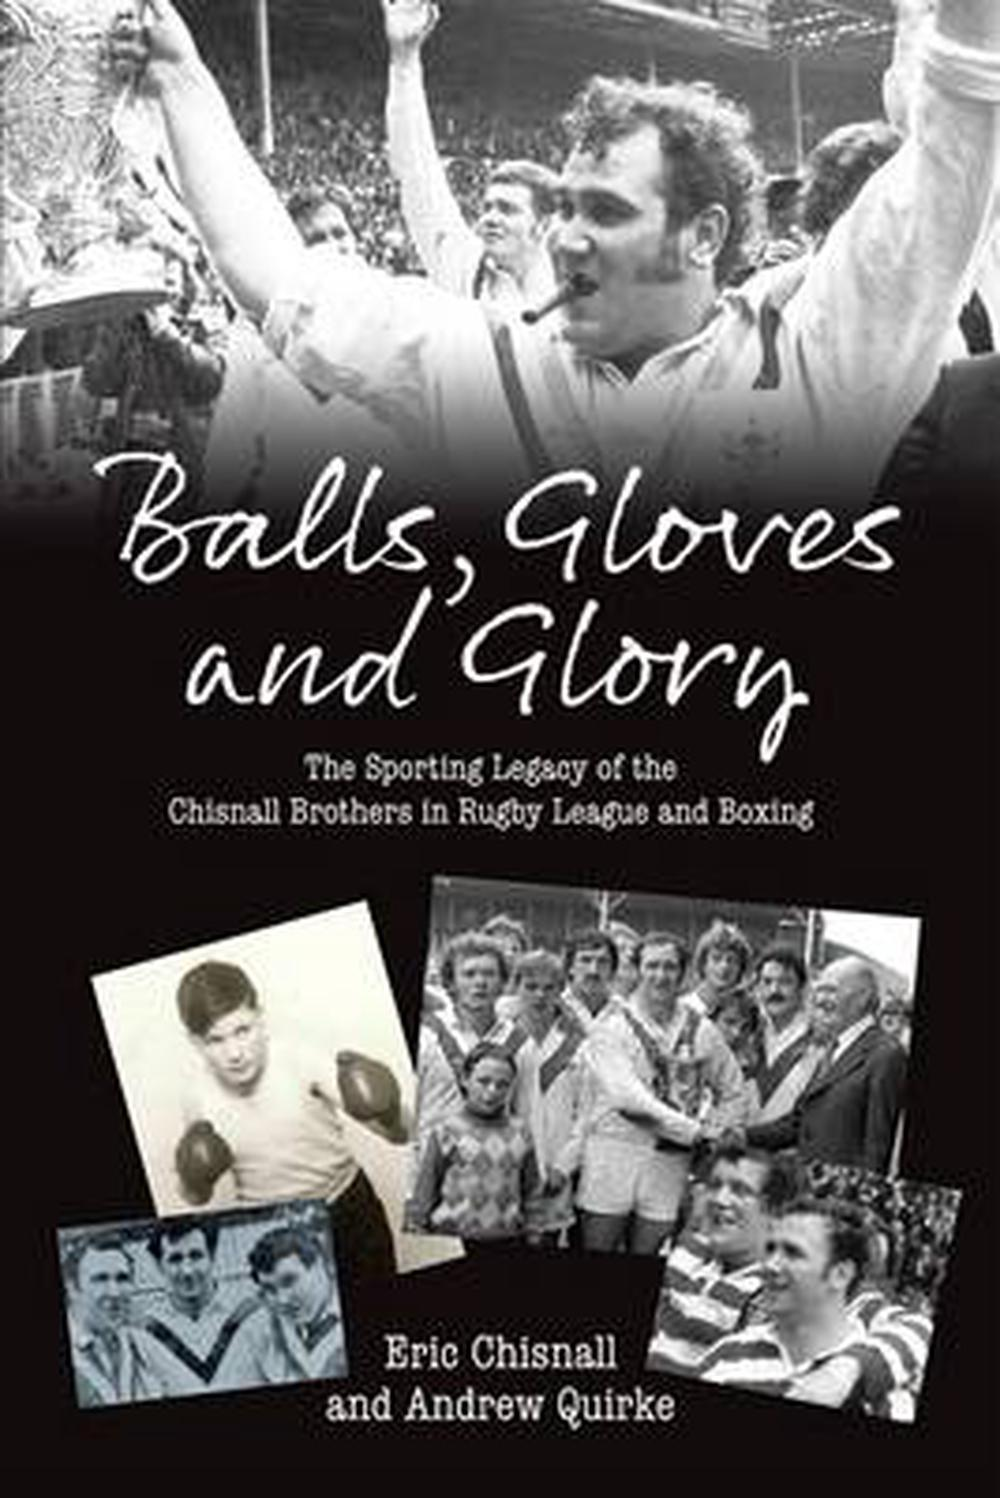 Balls-Gloves-and-Glory-by-Eric-Chisnall-Paperback-Book-Free-Shipping